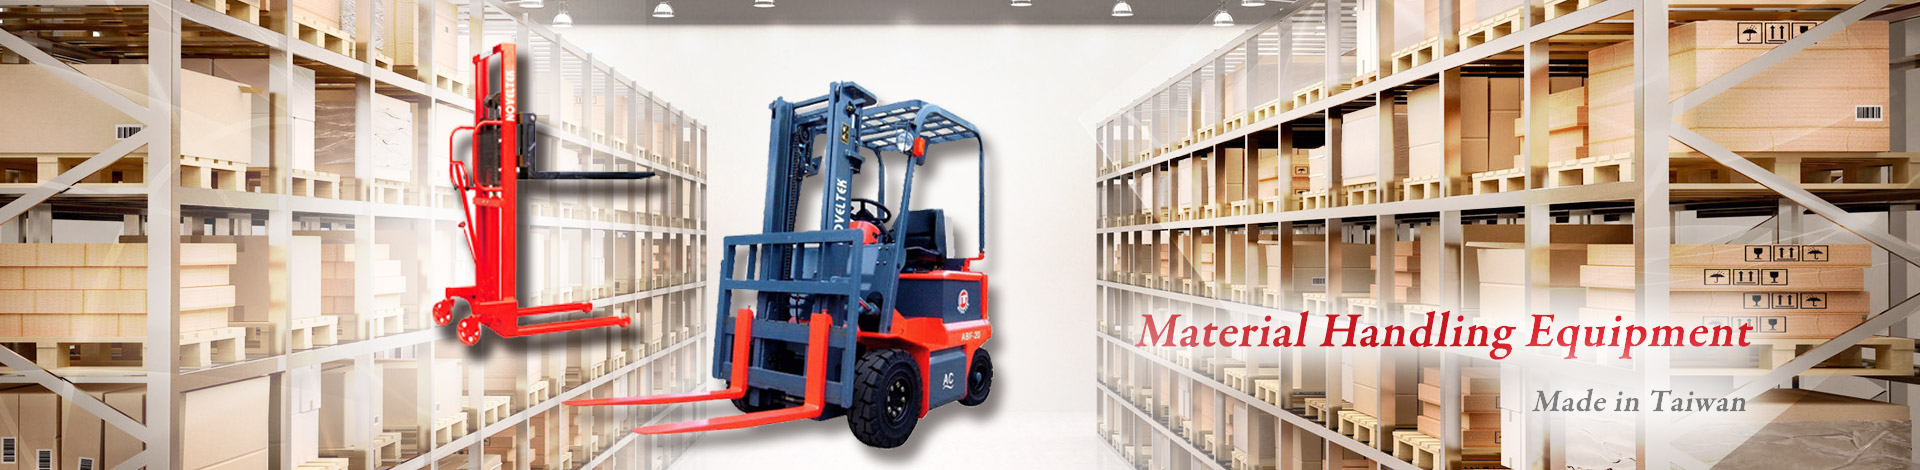 Noveltek Industrial Manufacturing Inc. is a leading Counter Balanced Reach Truck and Order Picker Truck manufacturer specialized in Powered Pallet Truck, Electric Forklift, Order Picker Truck, Pallet Truck, Counter Balanced Reach Truck, Walkie Stacker, Pallet Stacker, Pallet Jet, Powered Stacker, Lift Table, Pallet Truck Manufacturer , and Electric Forklift Manufacturer.